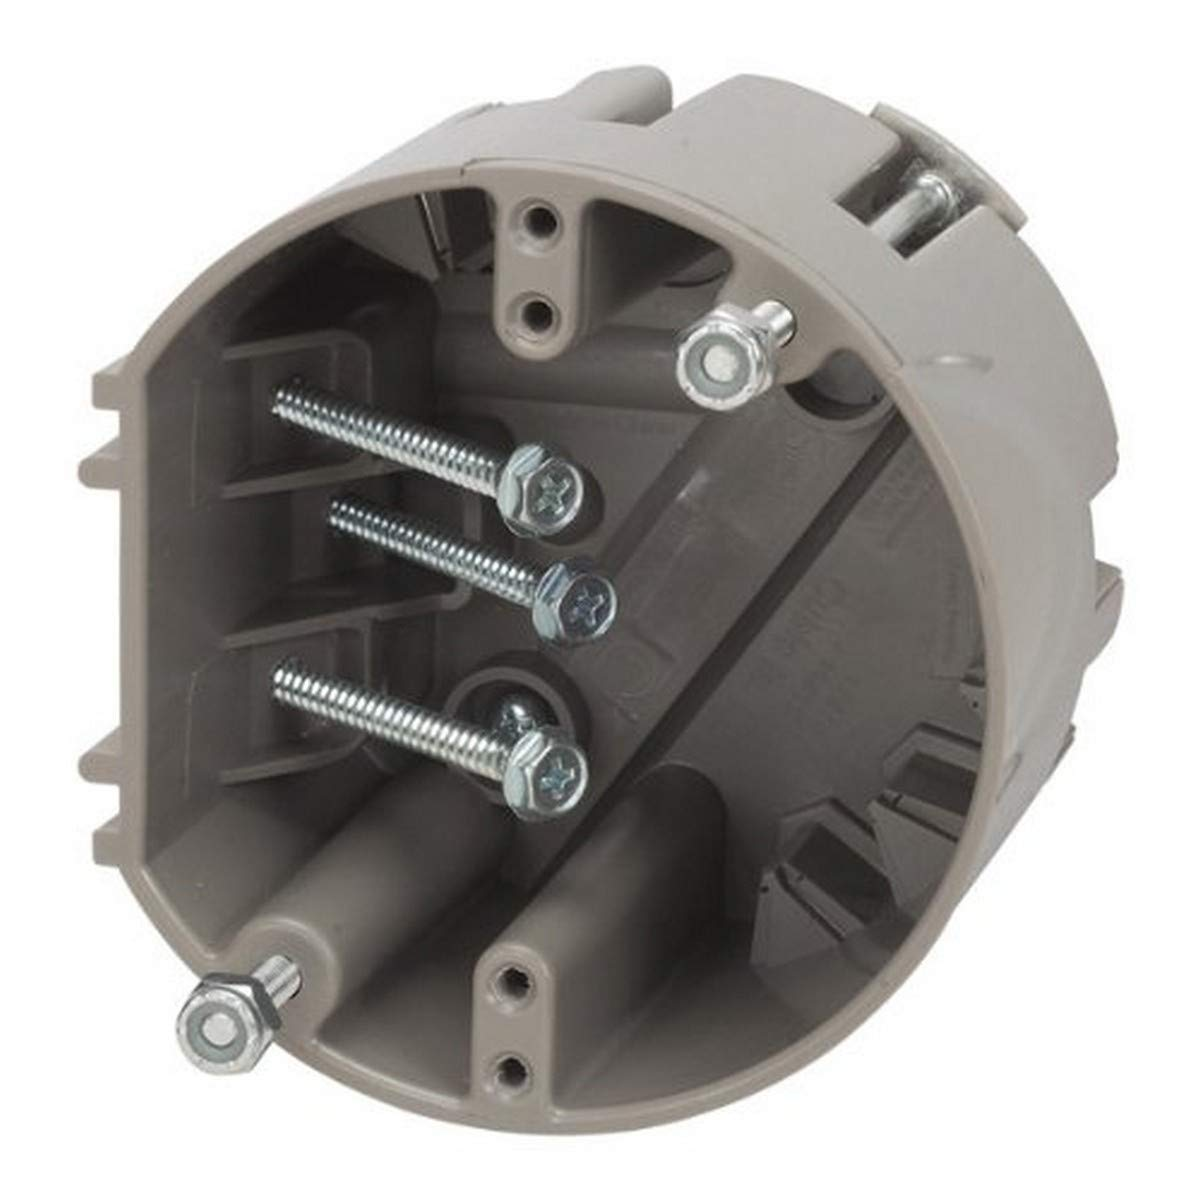 New arrival Madison Electric Products MSBFAN Max 85% OFF Fan 50 lb wit Support Maximum